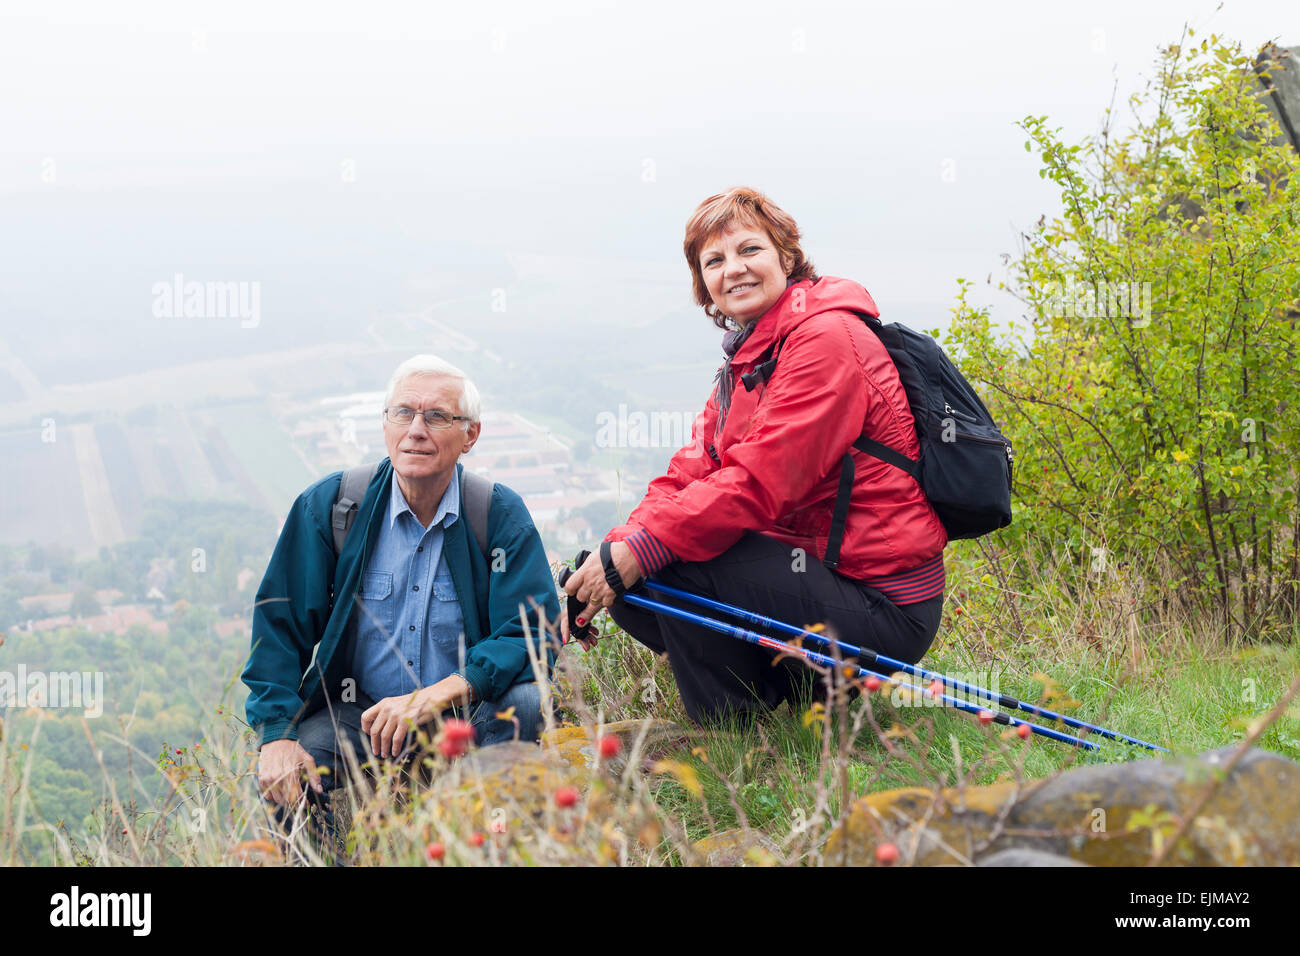 Senior couple on hiking trip resting in the nature. - Stock Image